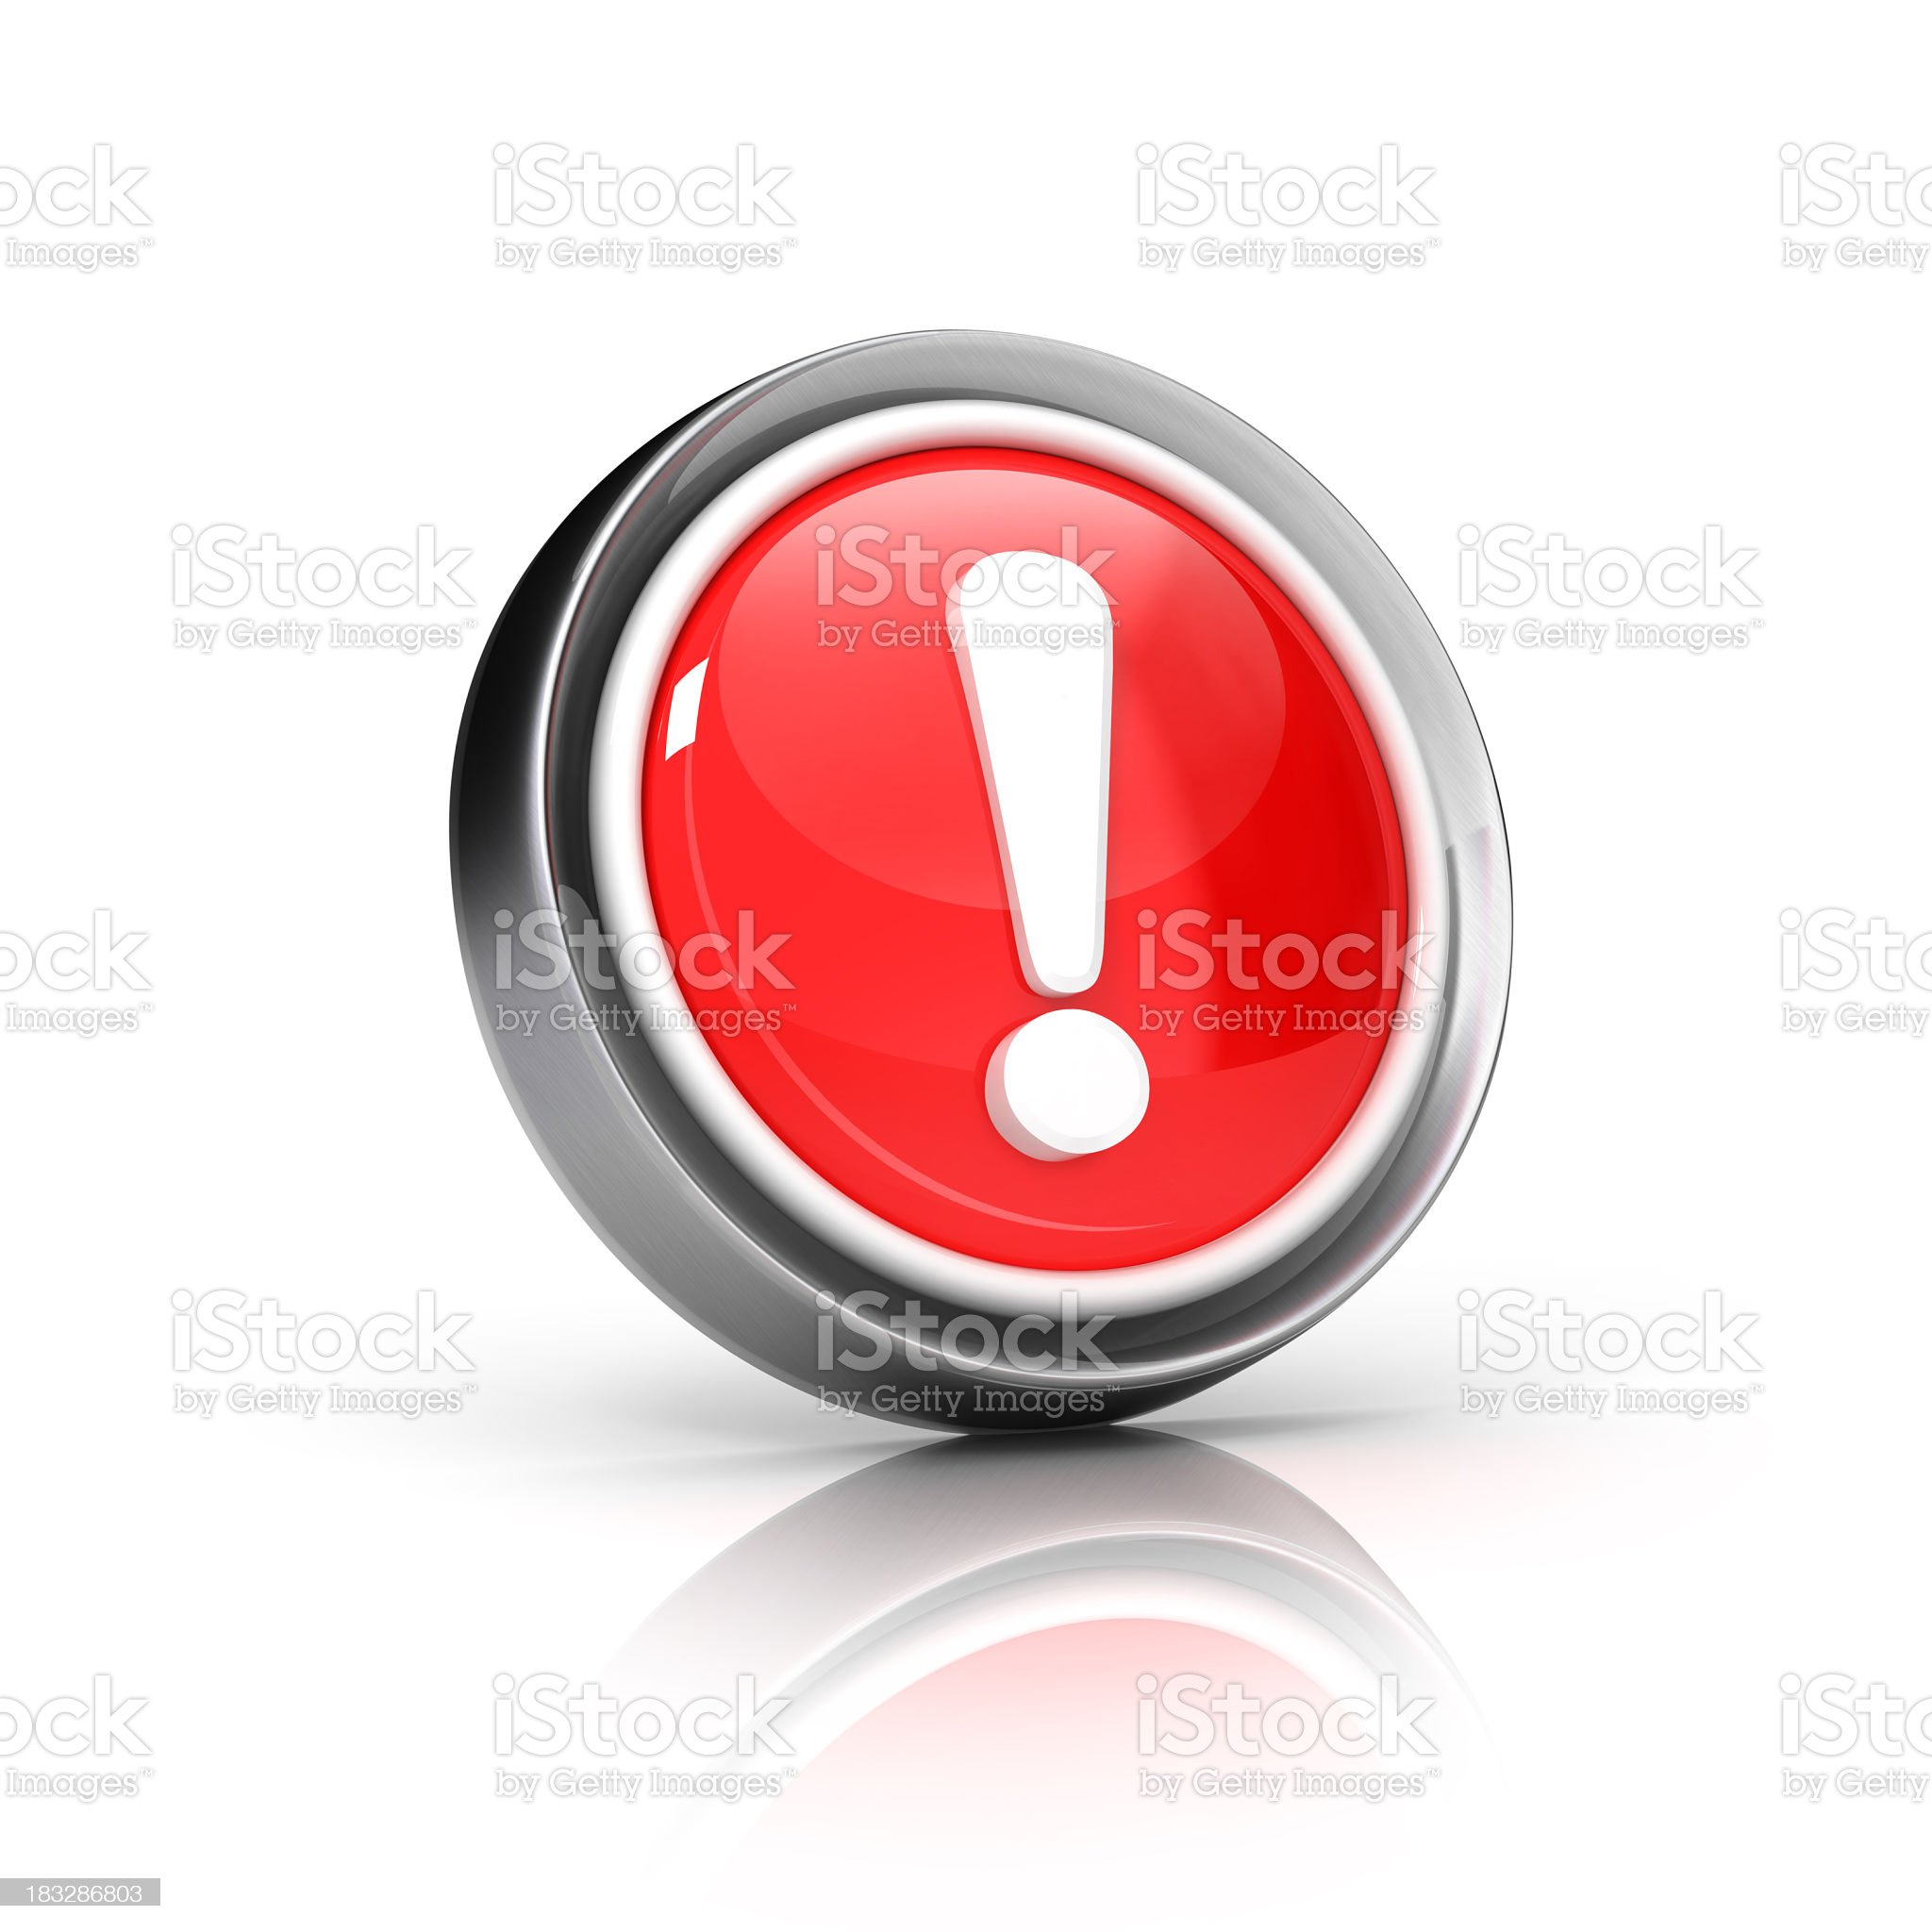 Red symbol conveying an error message royalty-free stock photo